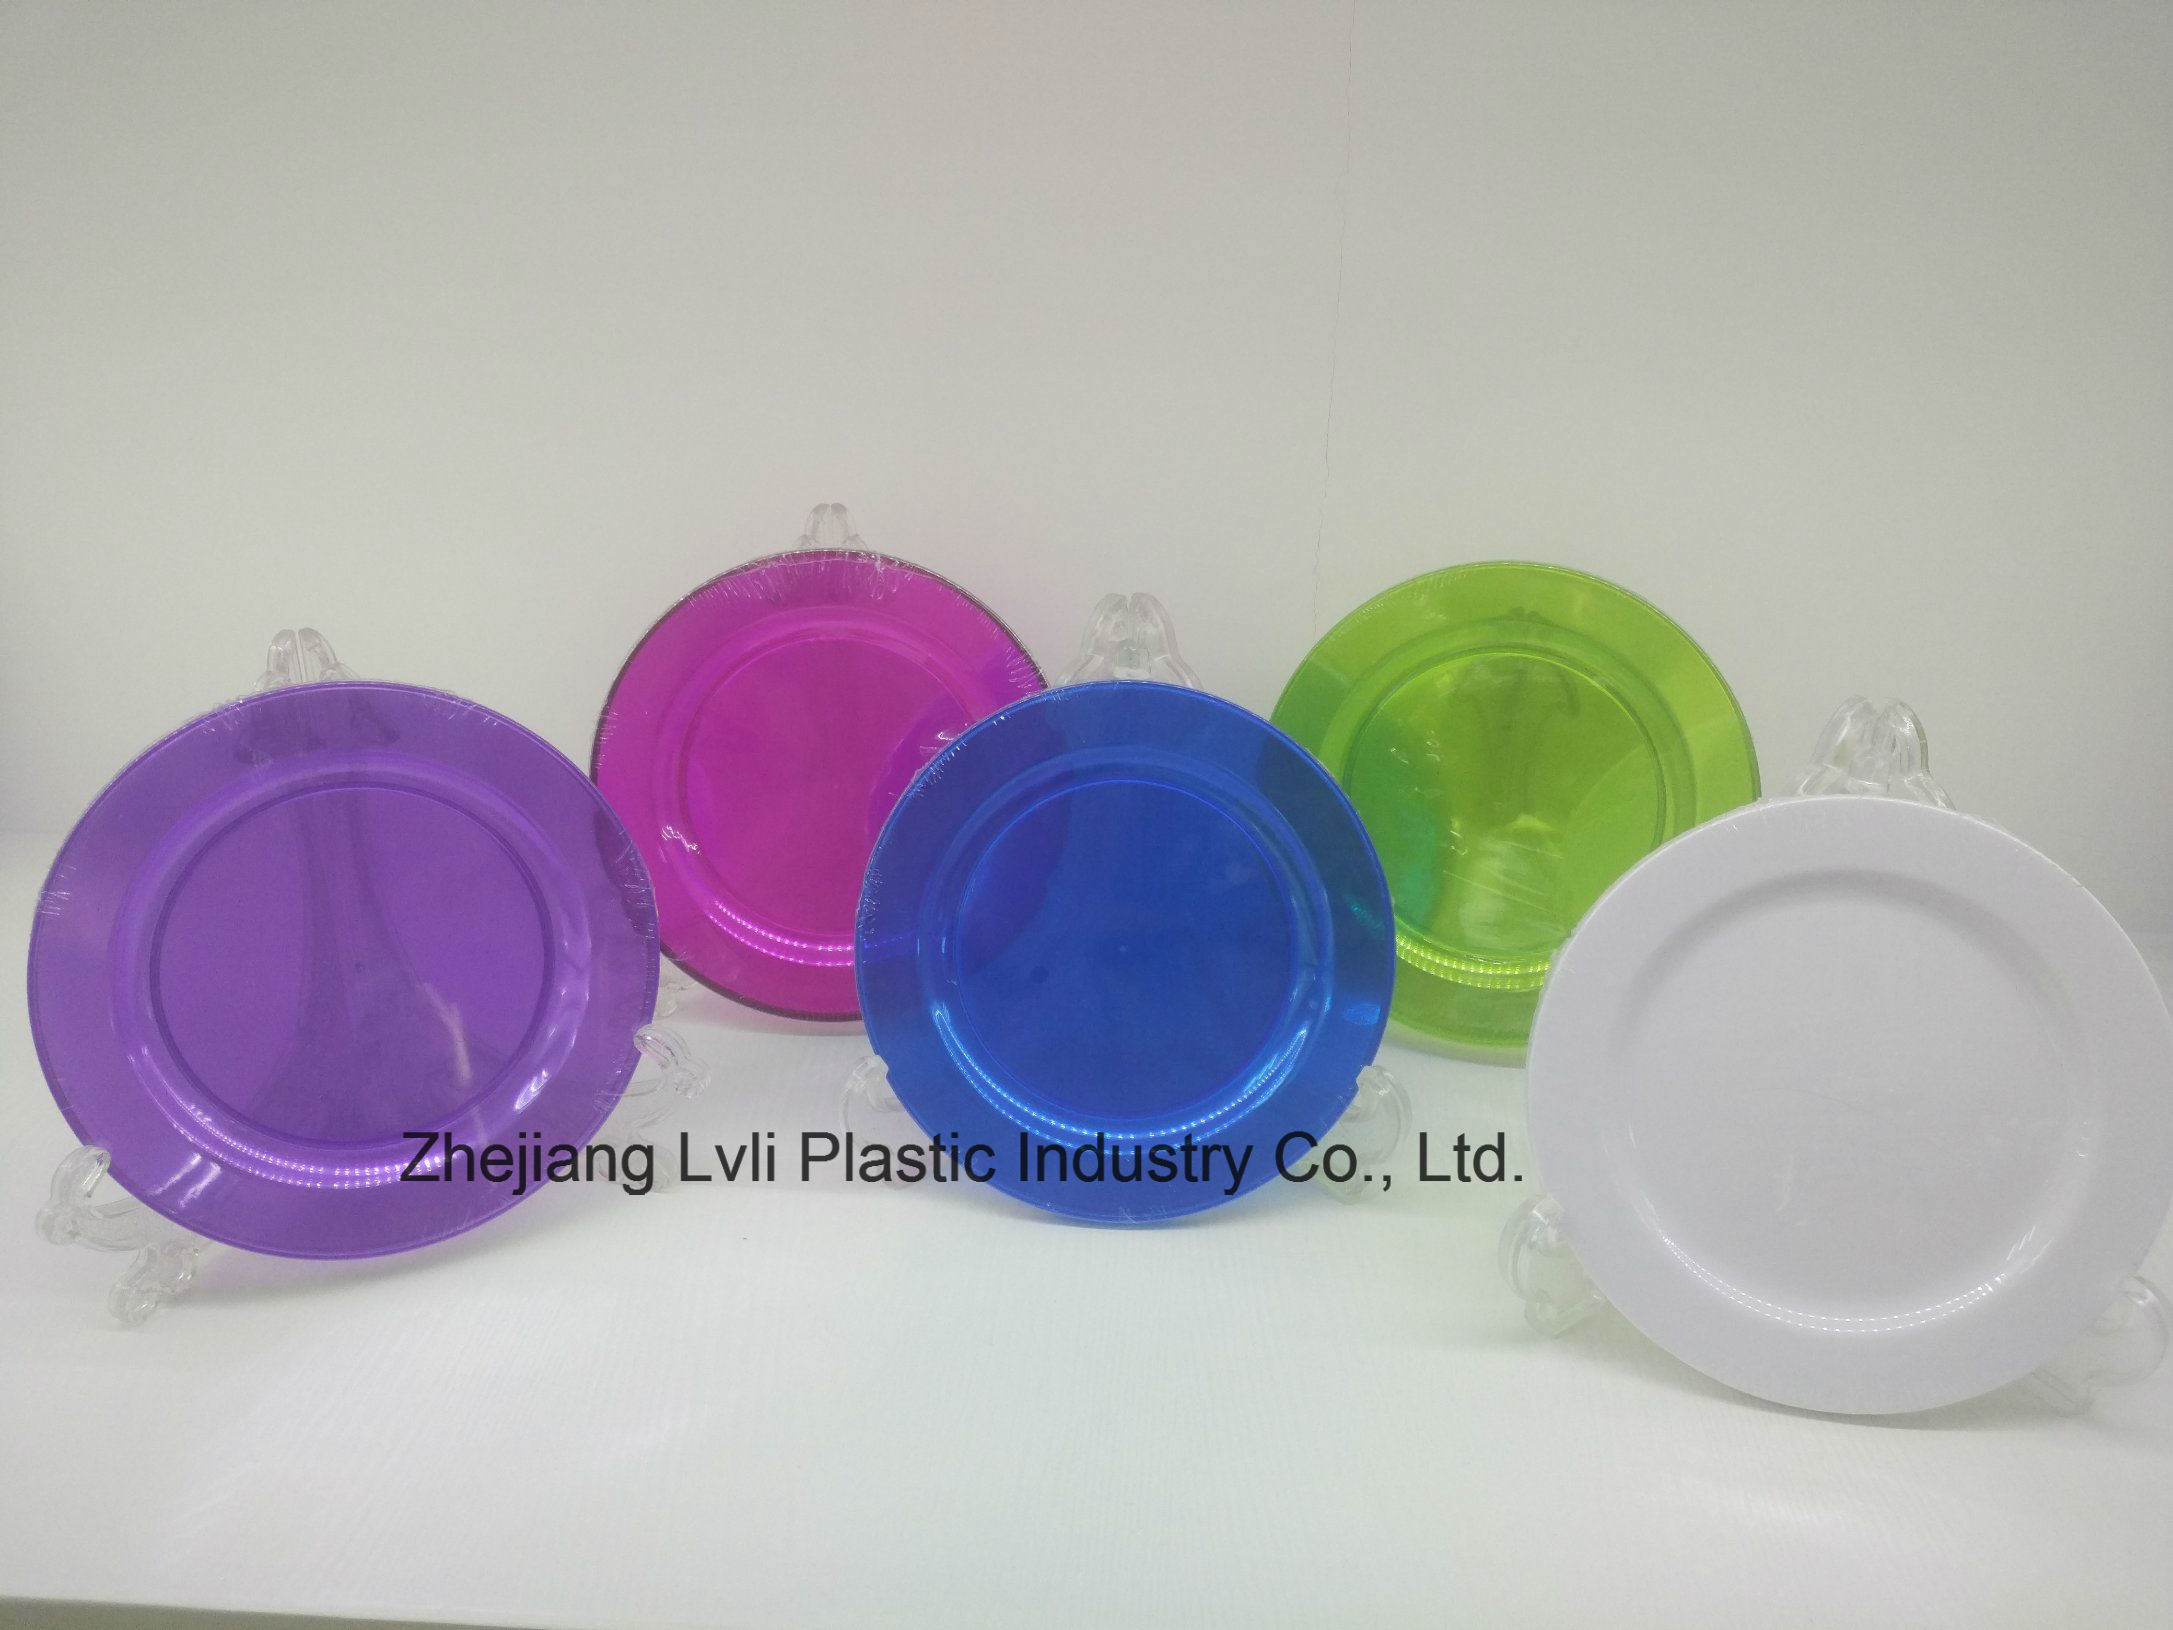 Plastic Plate, Disposable, Tableware, Tray, Dish, Colorful, PS, Transparent, PA-04